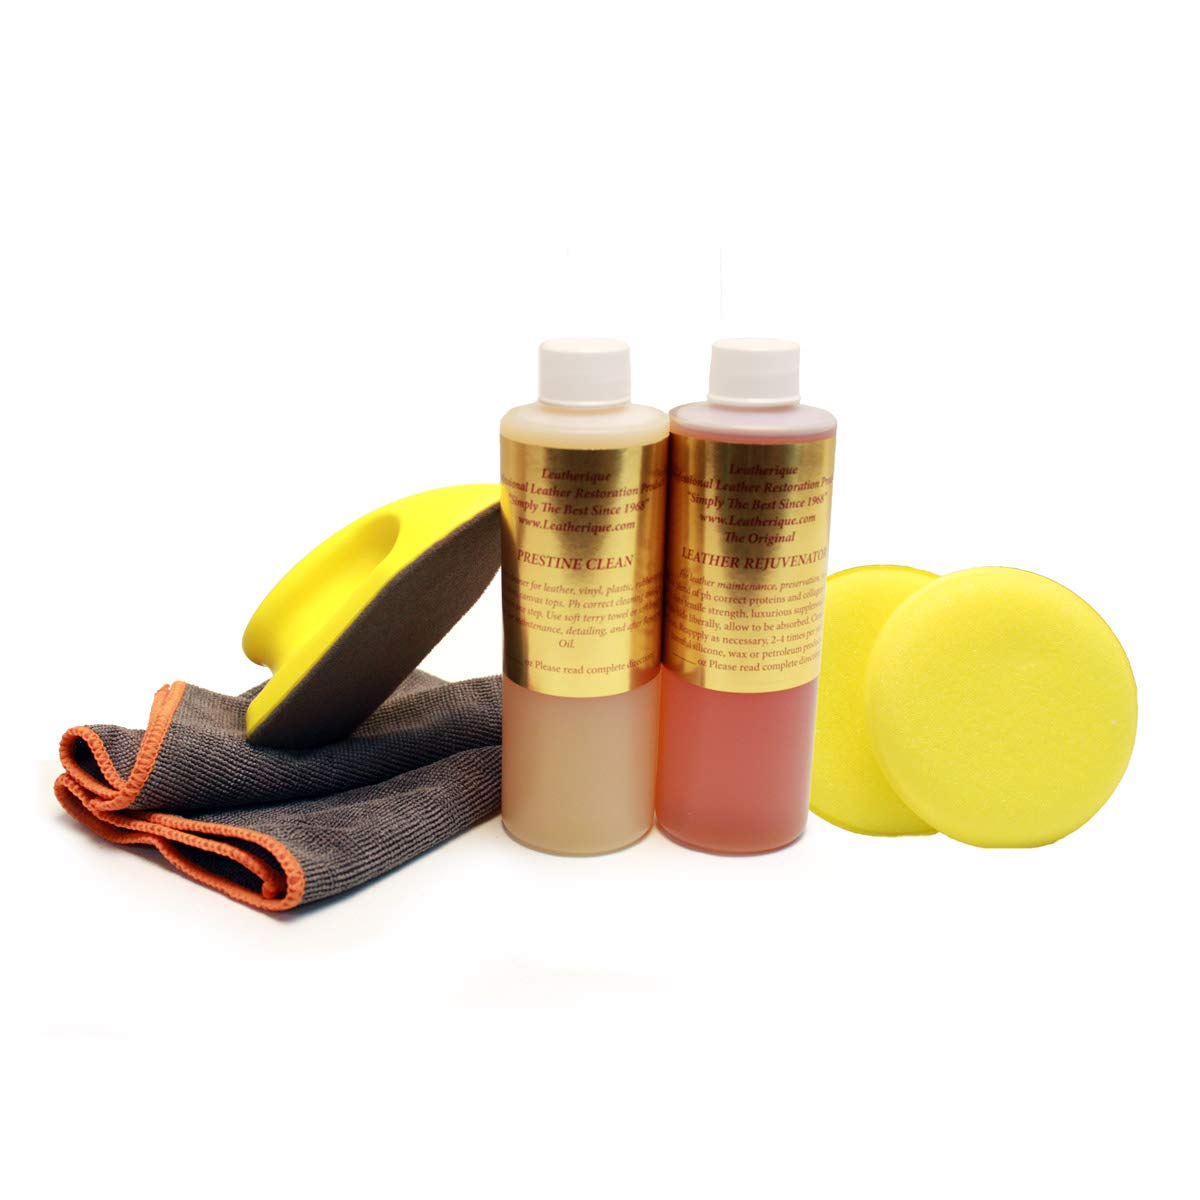 Leatherique 8 oz Kits (8oz Rejuvenating Kit)